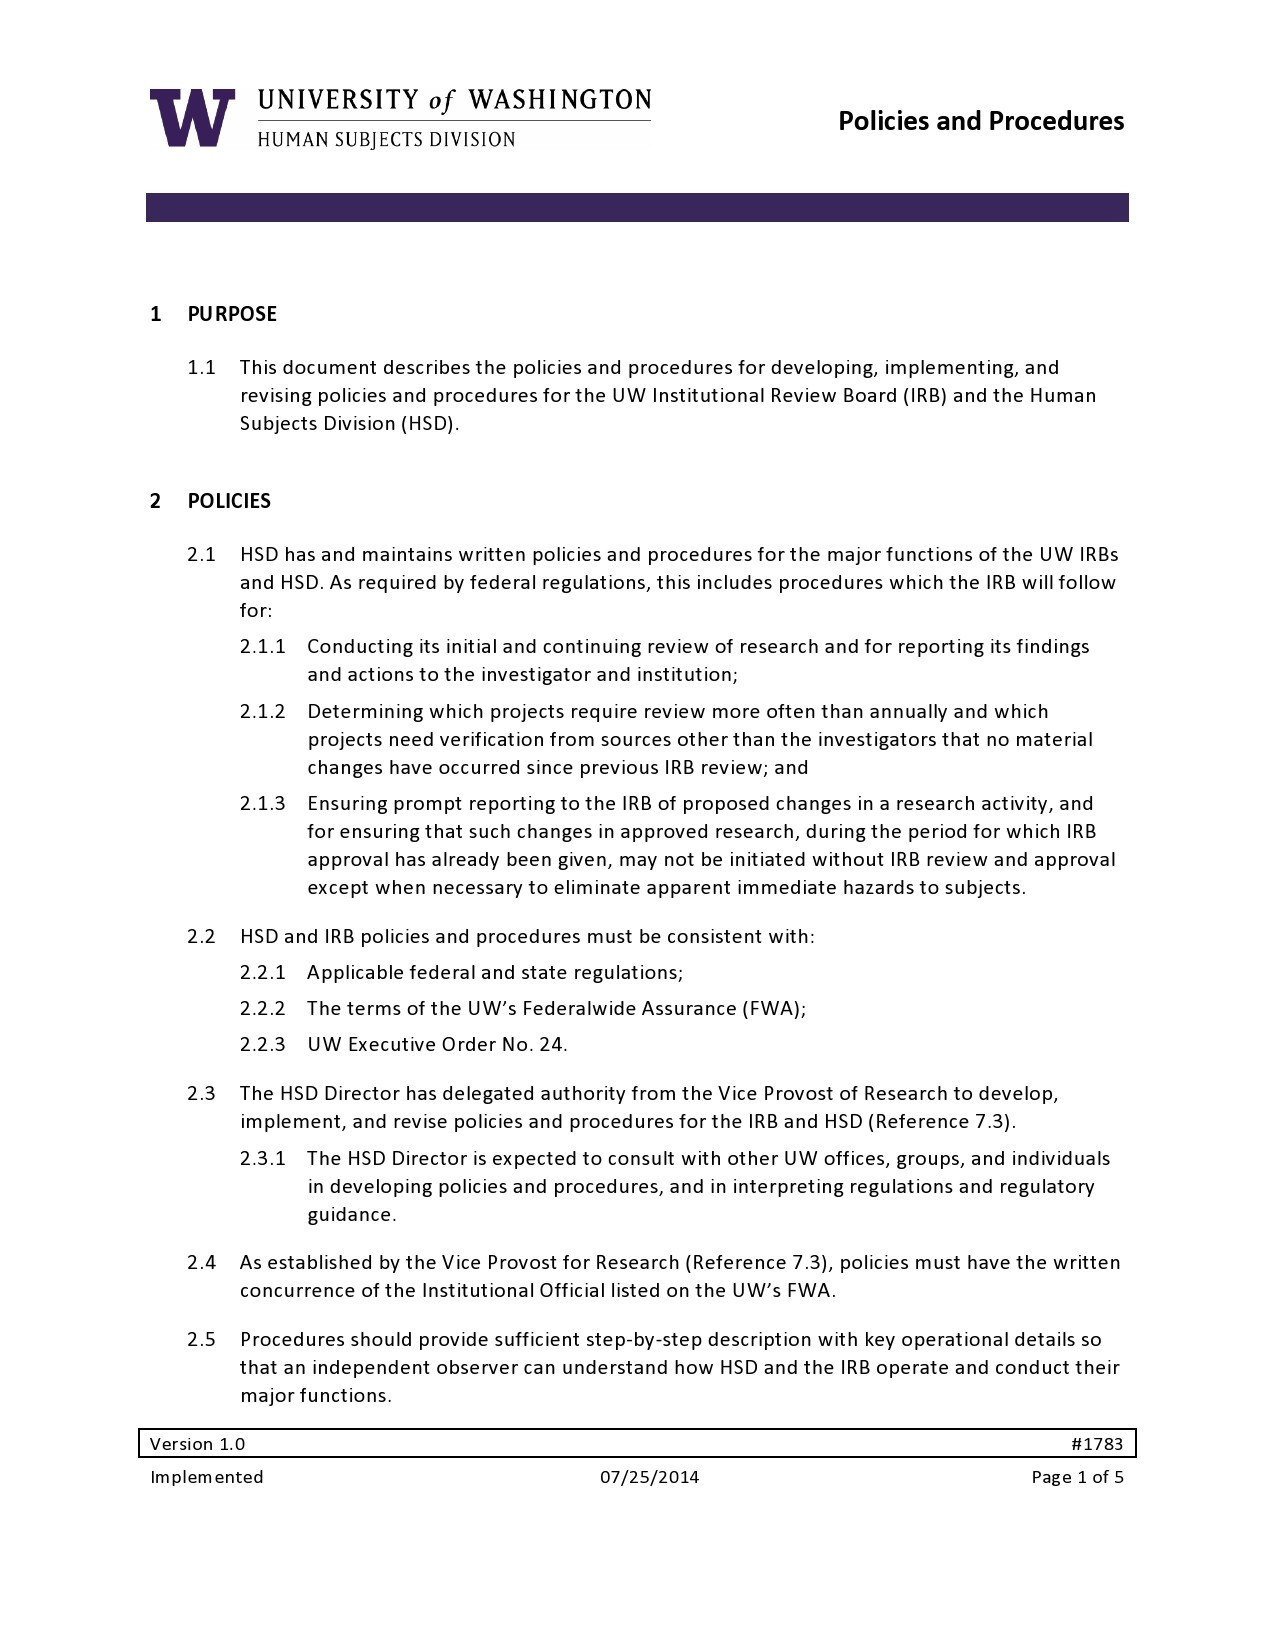 Free policy and procedure template 09